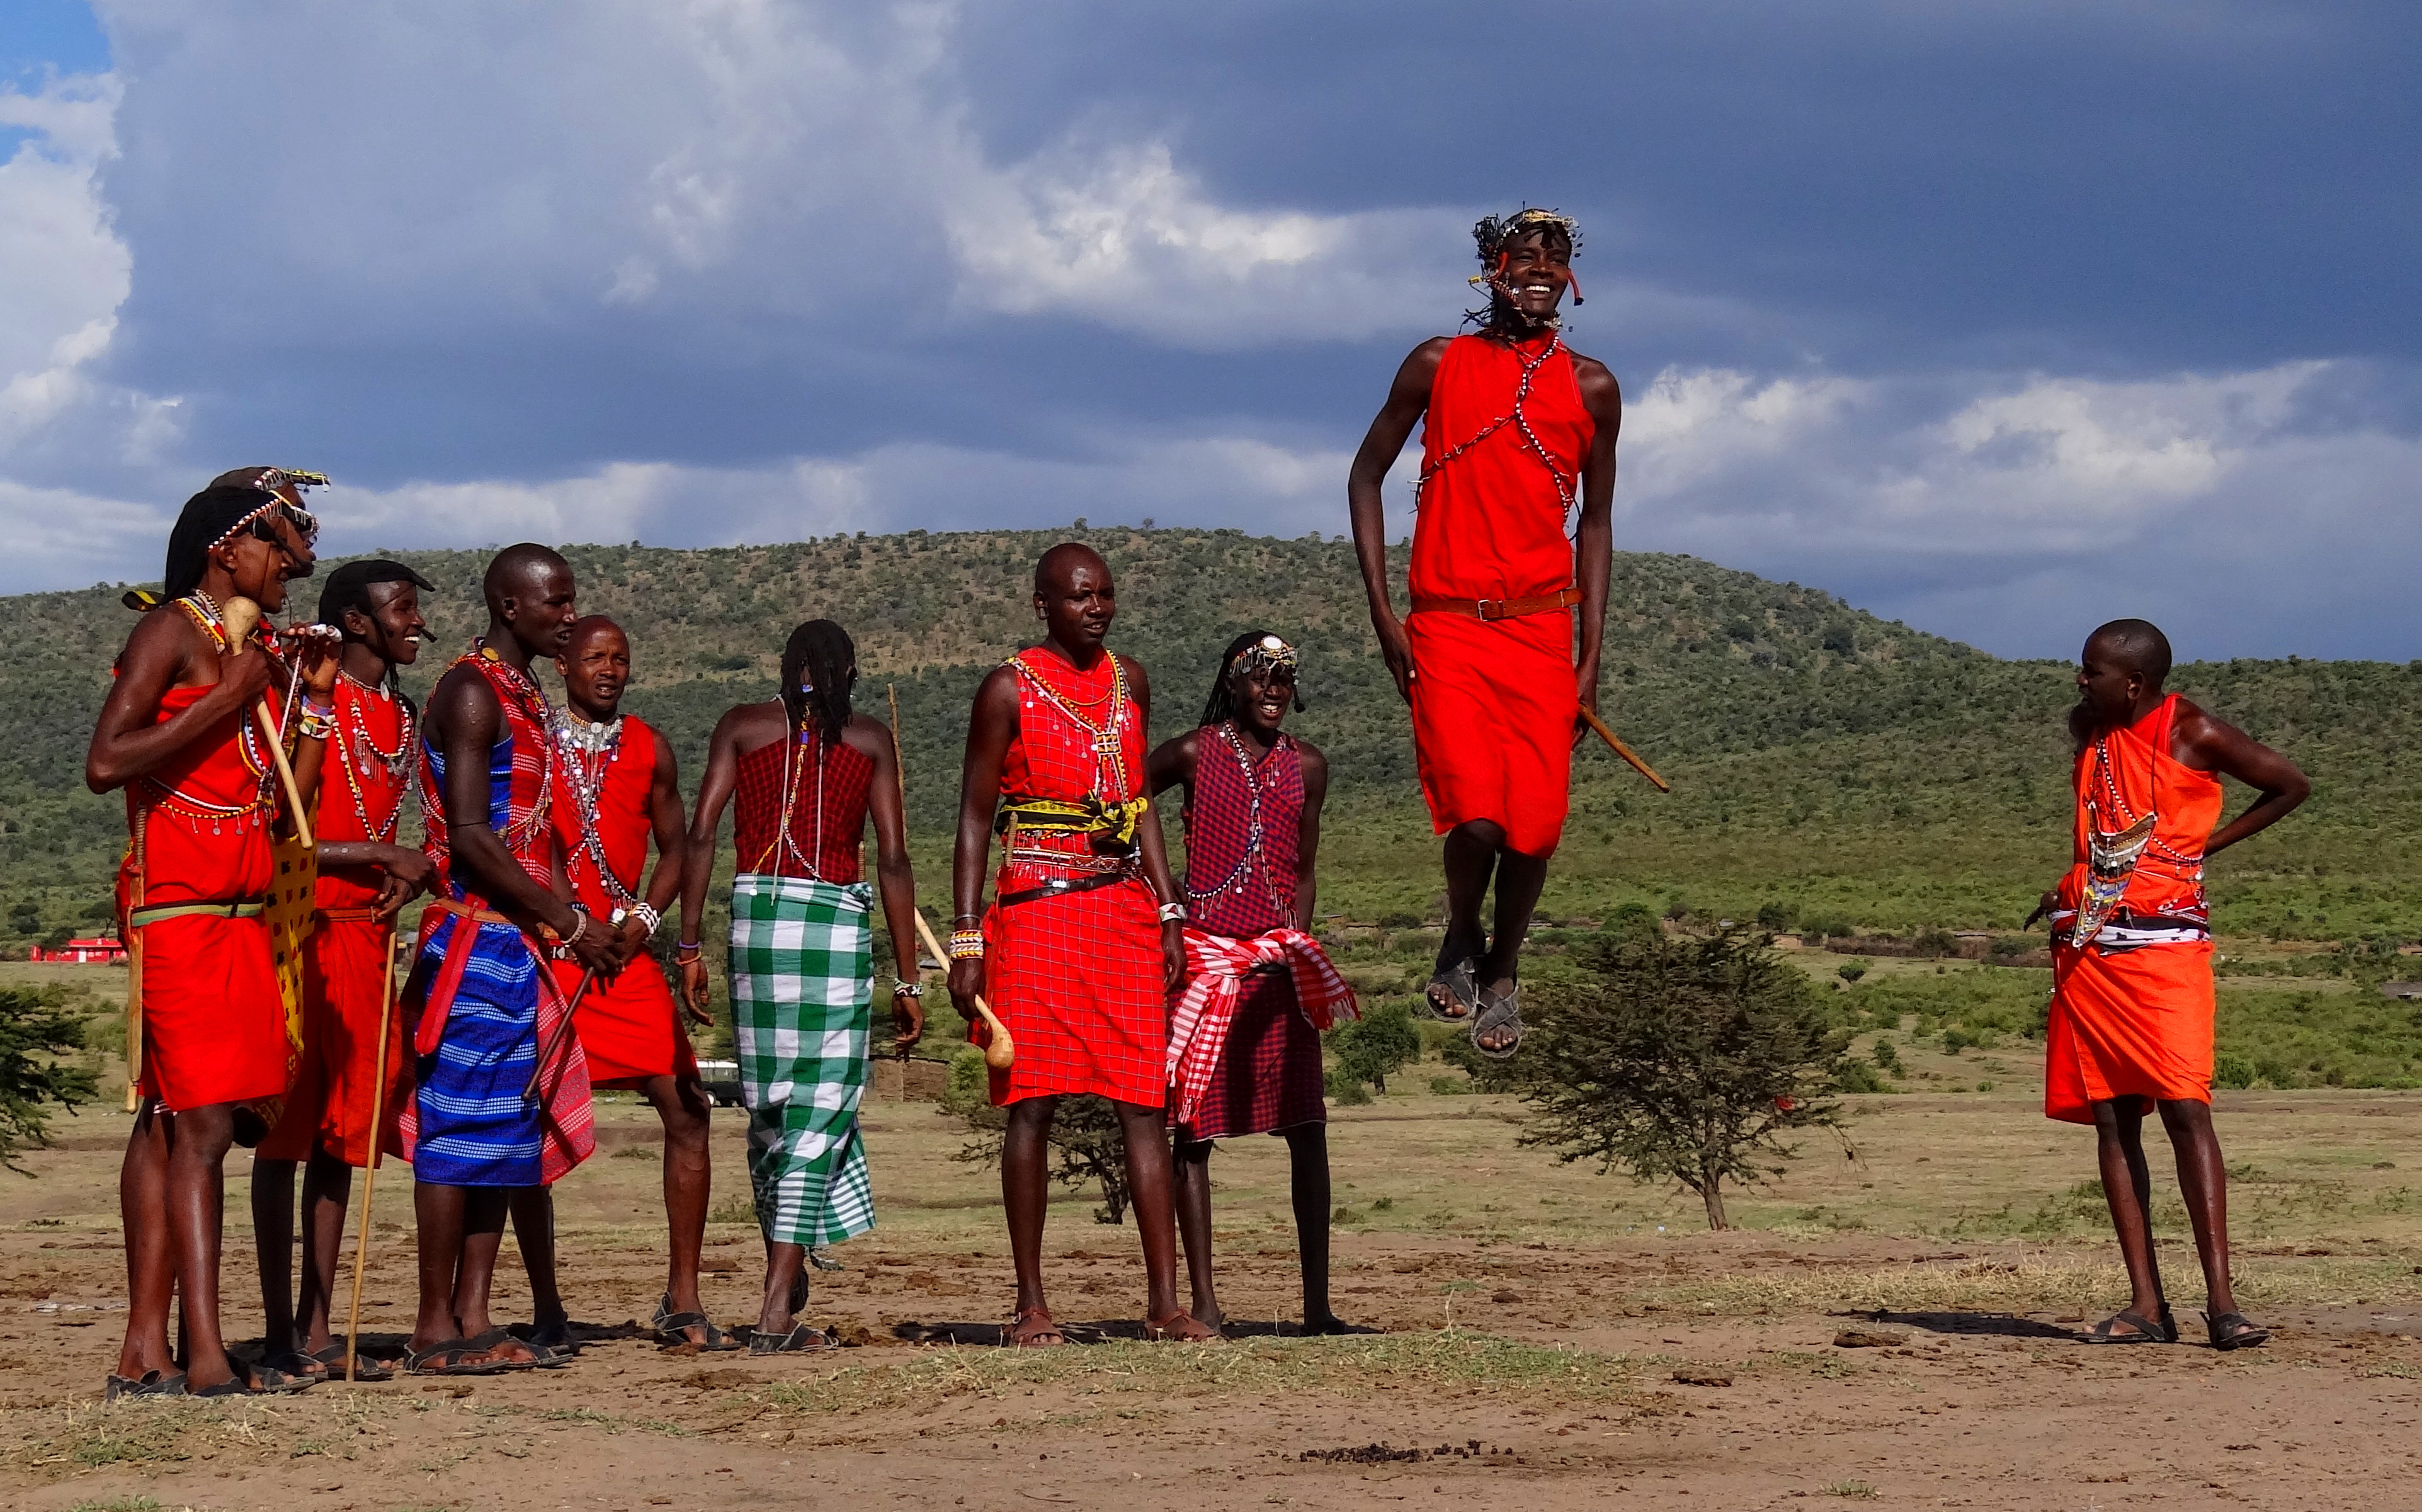 Maasai men jumping dance